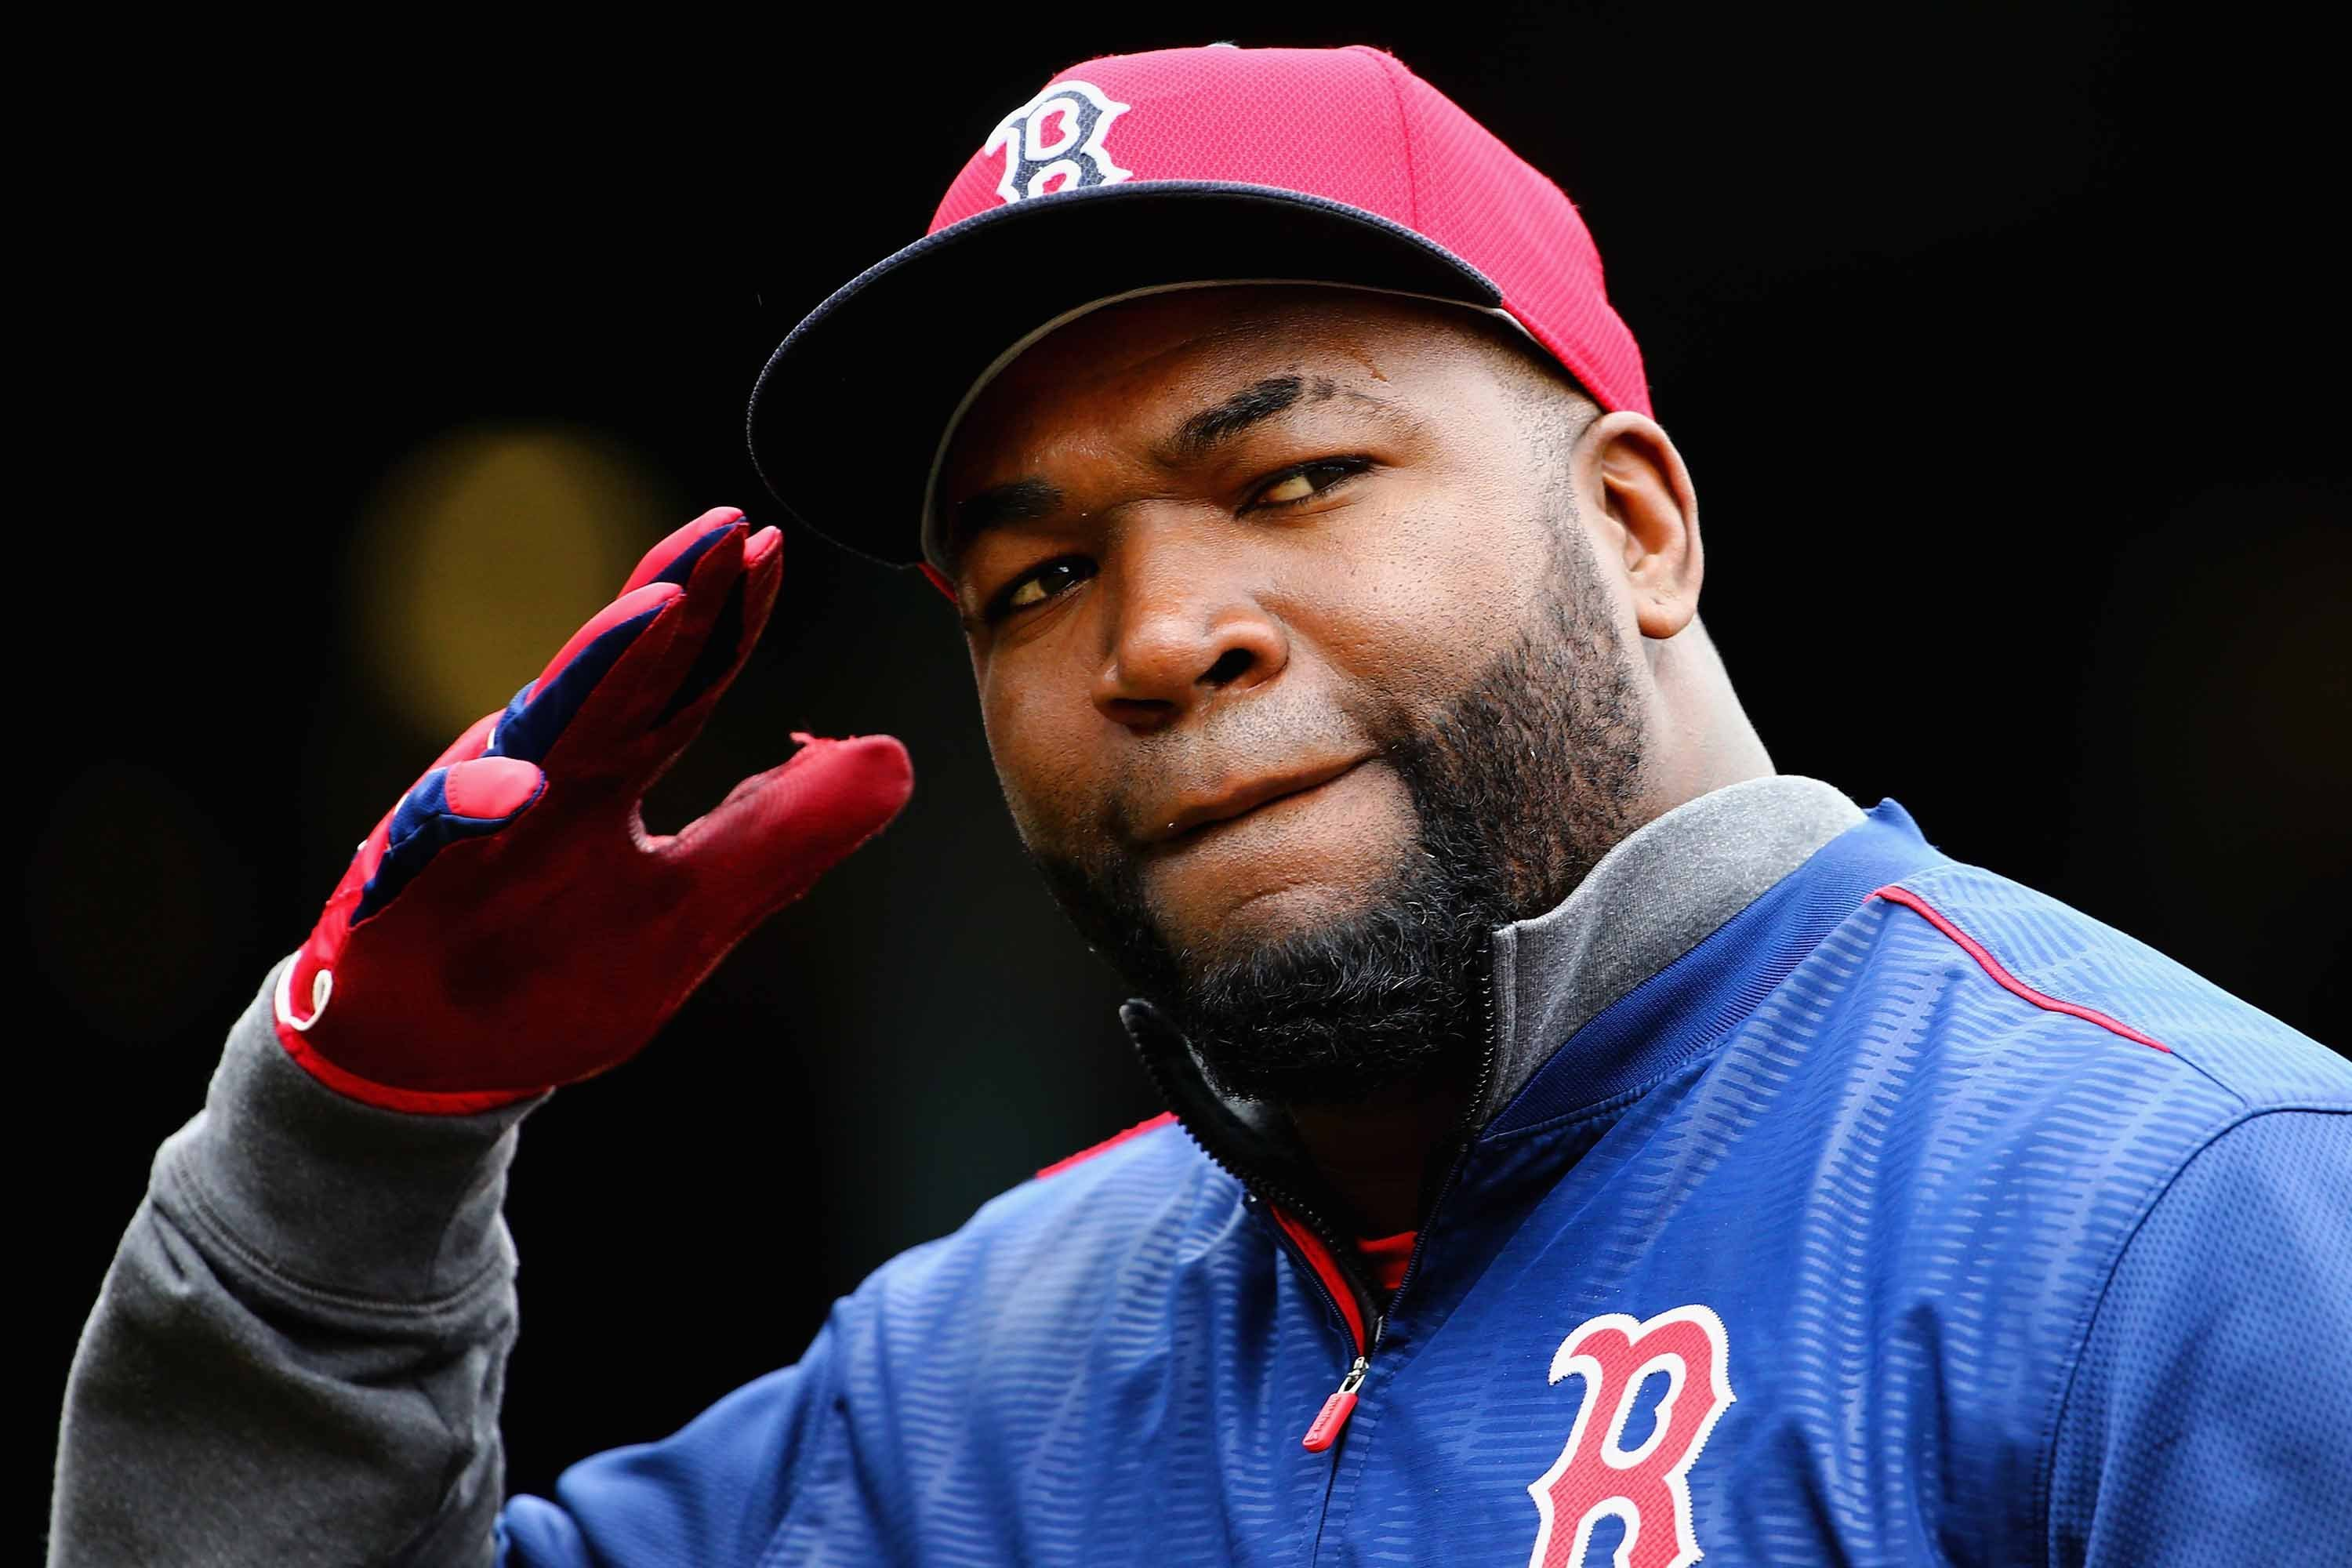 David Ortiz gets teary in his first interview since being shot